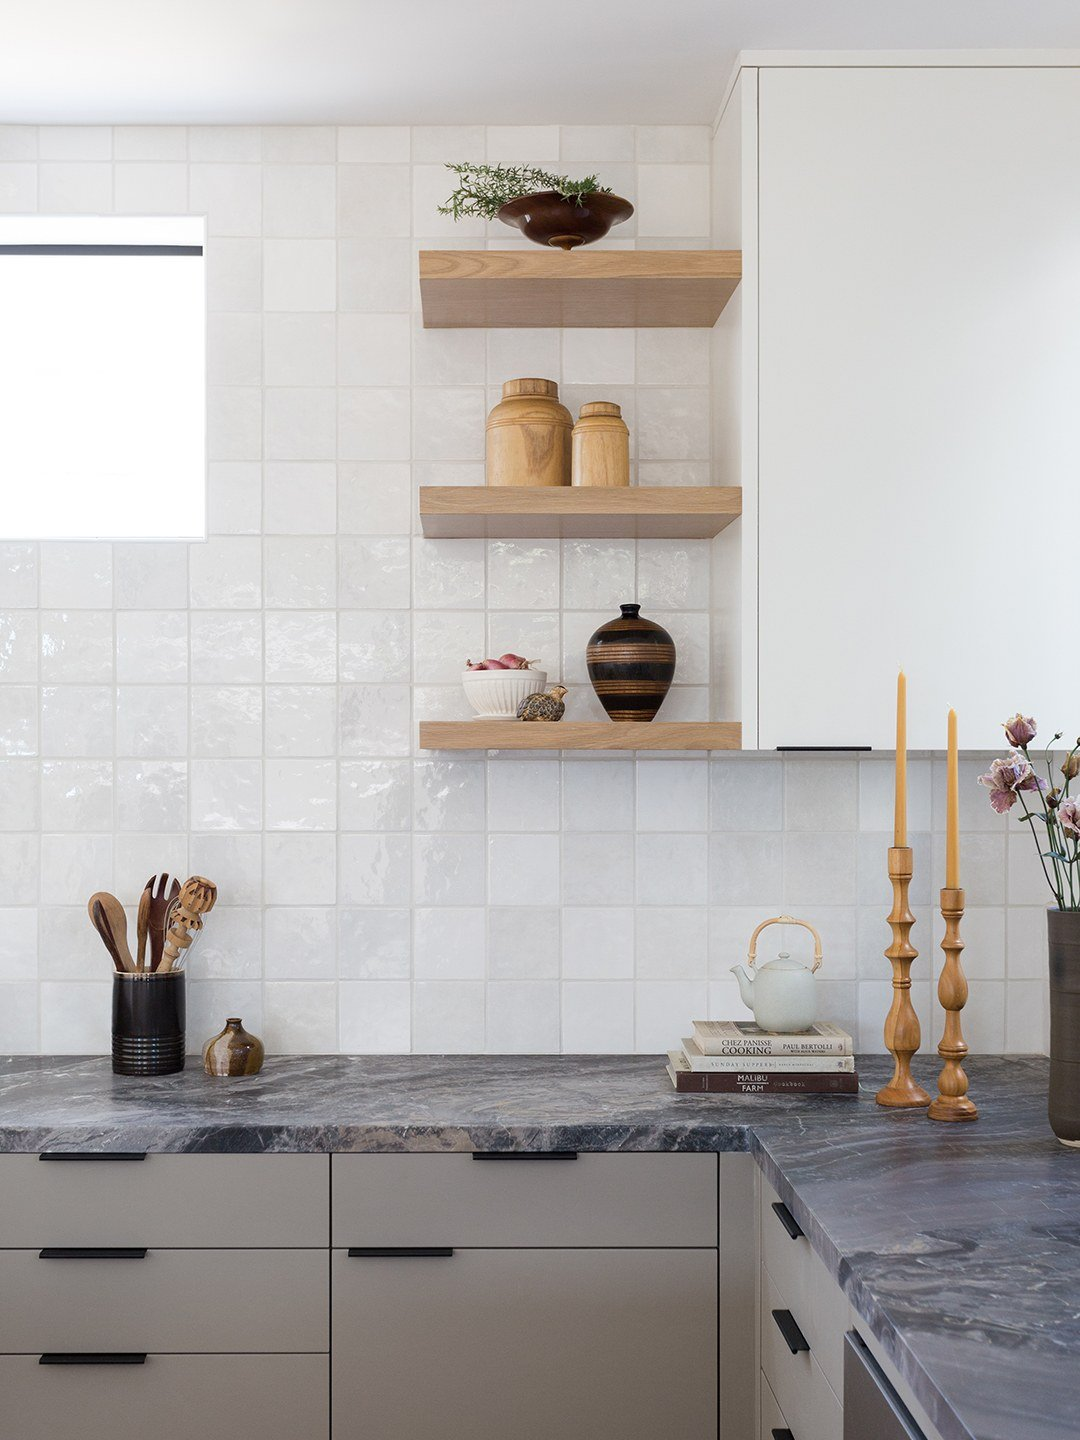 Marble Countertops Aren't Actually Impractical—Take This L.A. Designer's Word for It